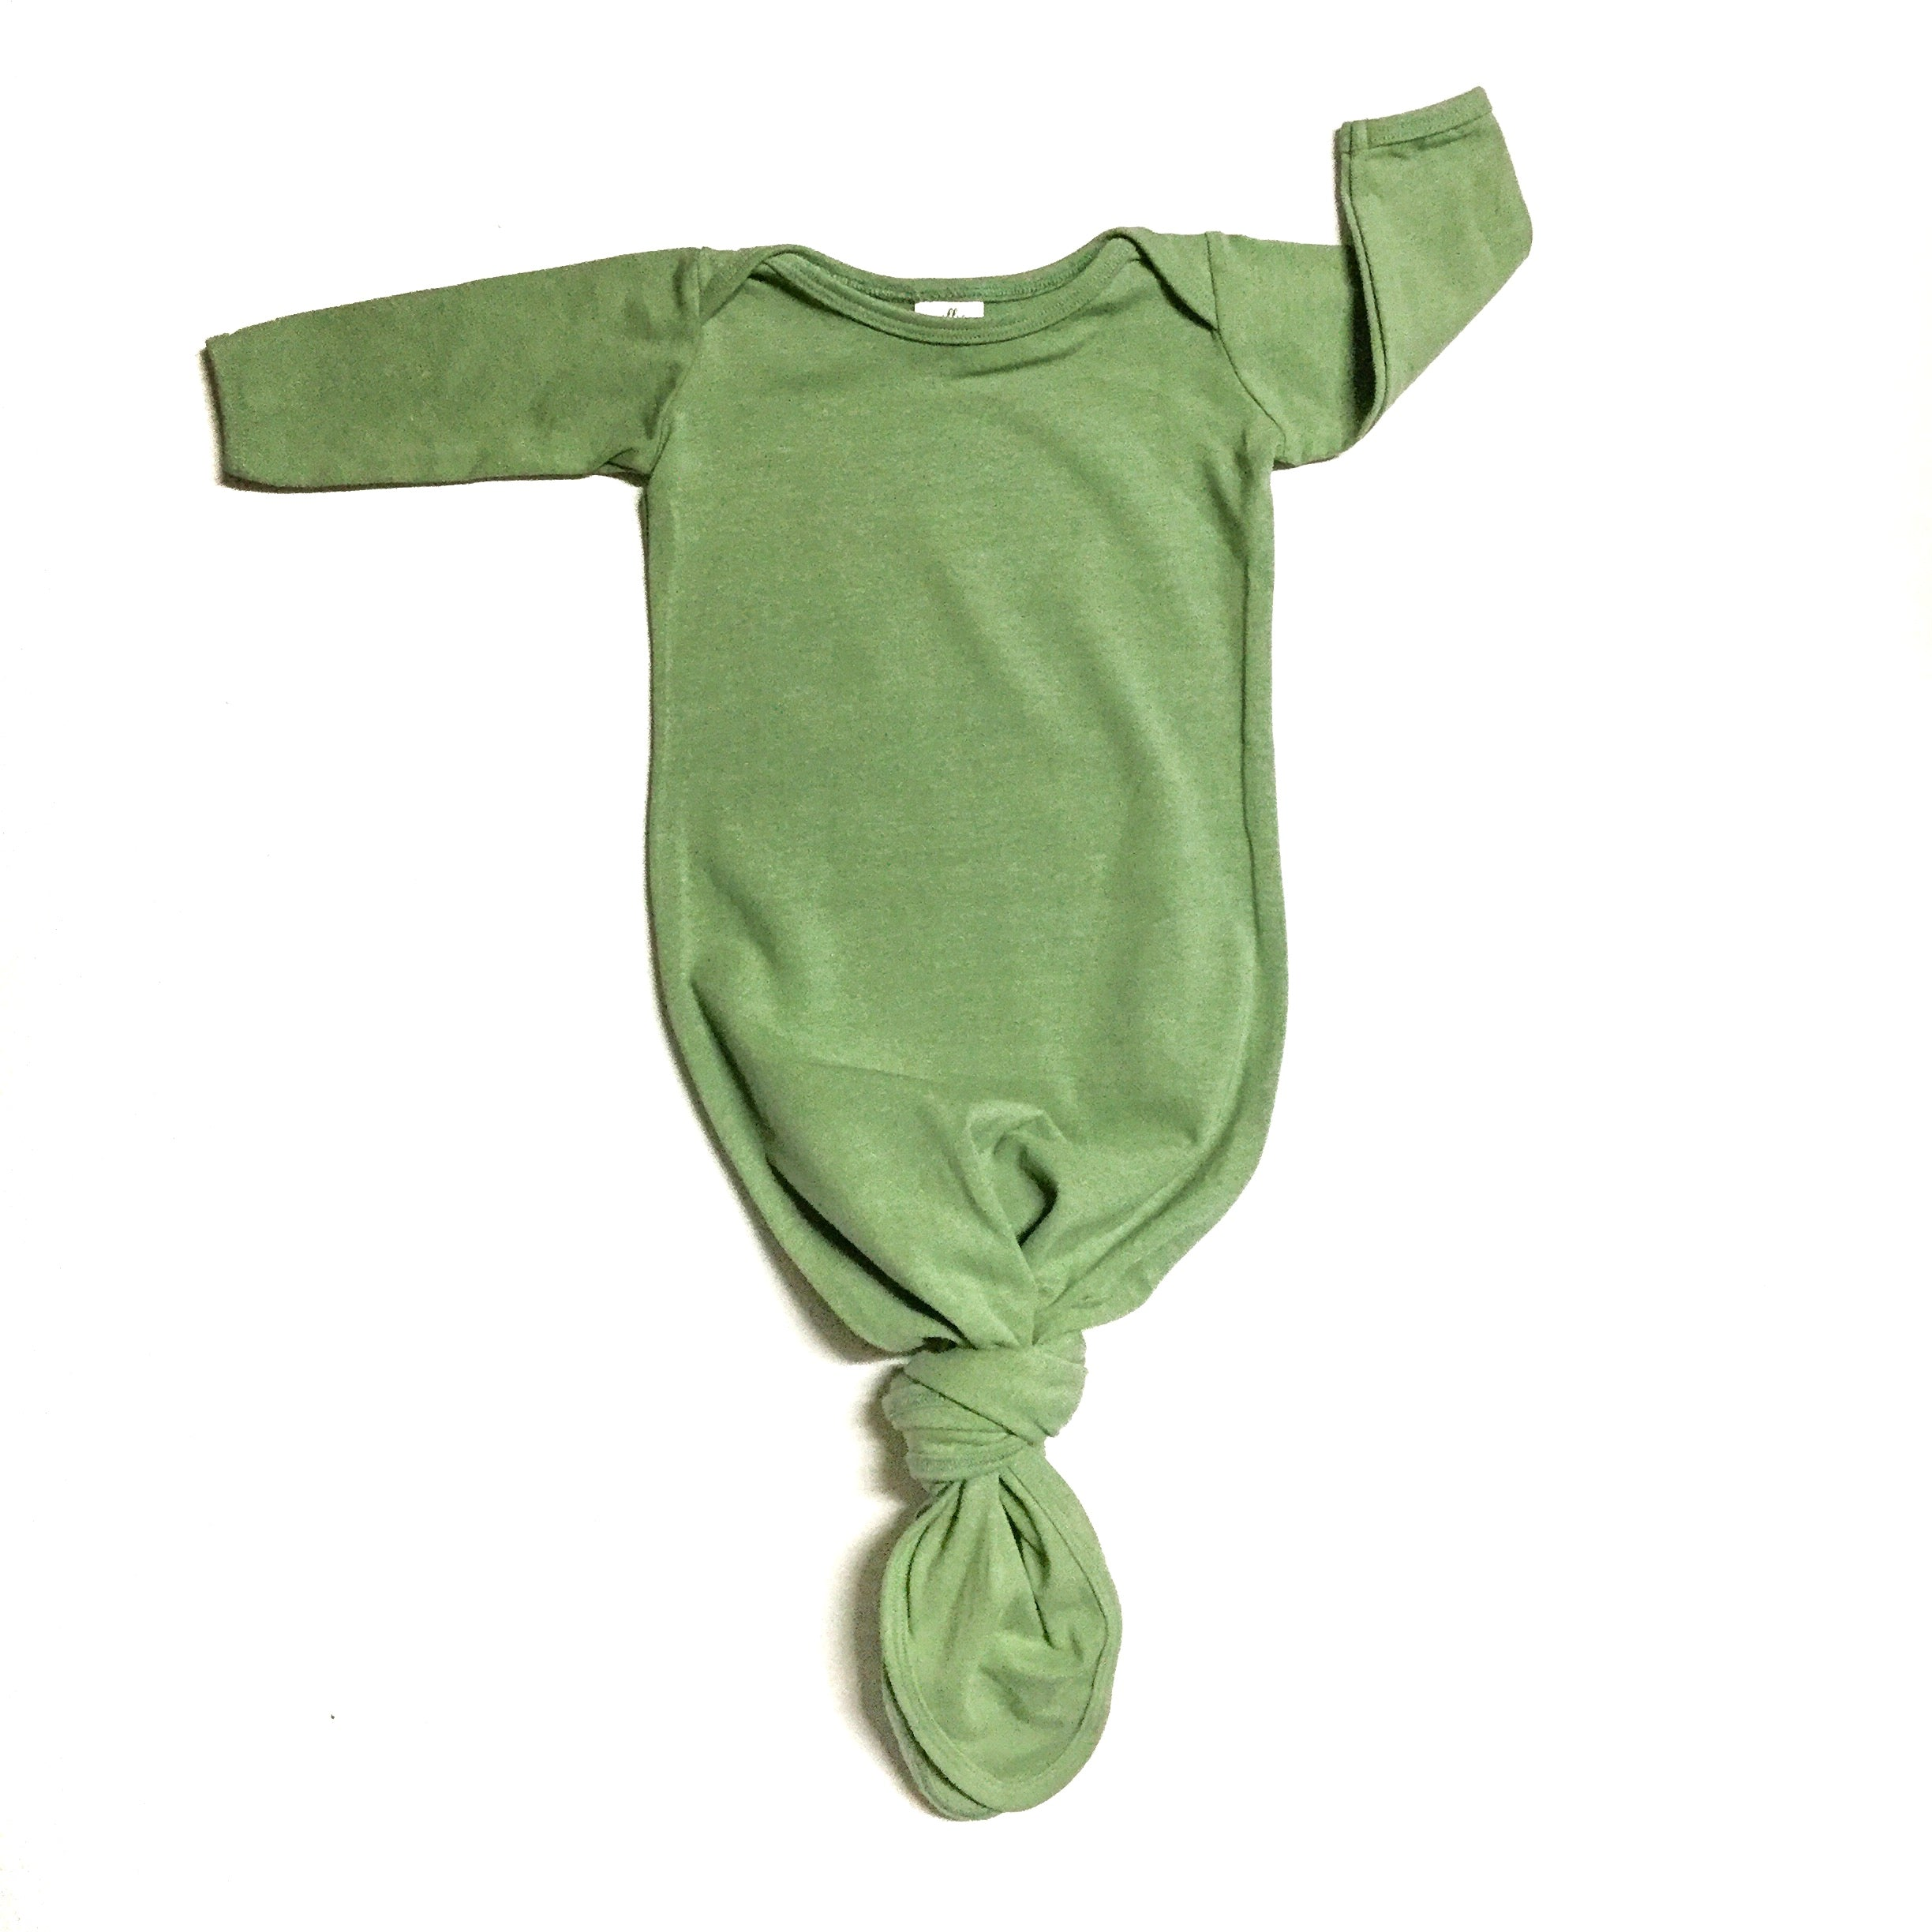 sage green unisex infant knot gown gender neutral baby clothes